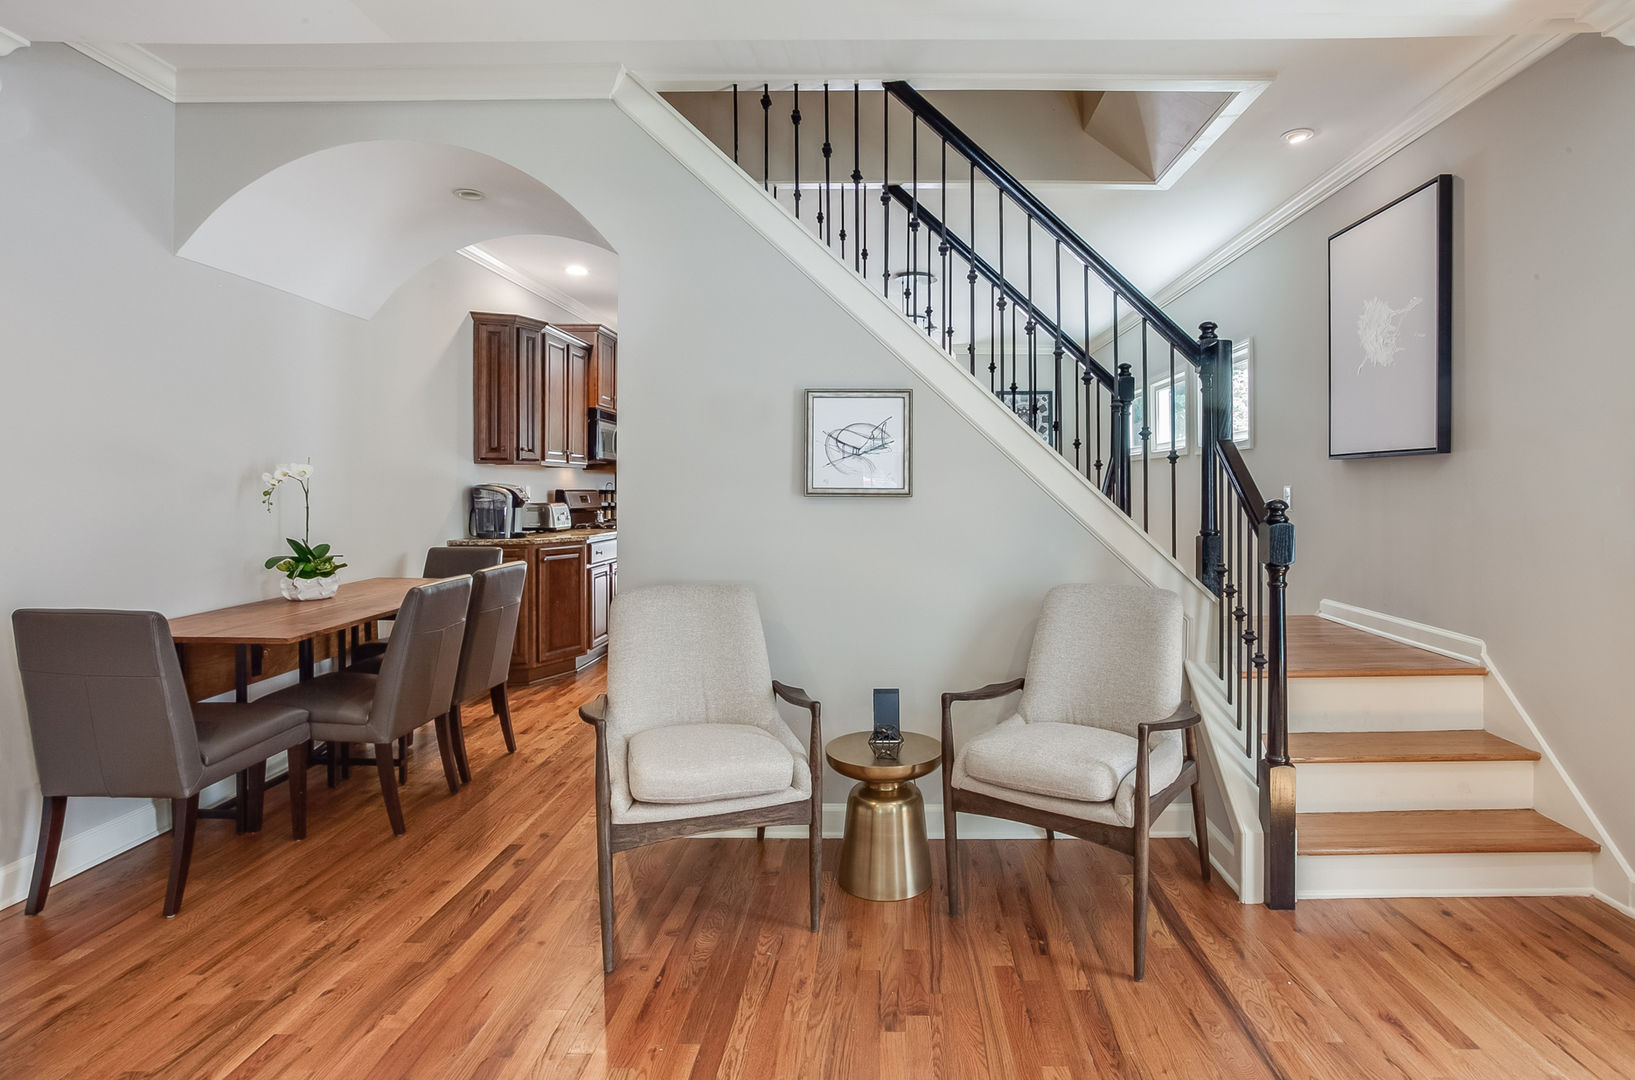 The Staircase, Chairs, Side Table, Dining Set, and the Kitchen.